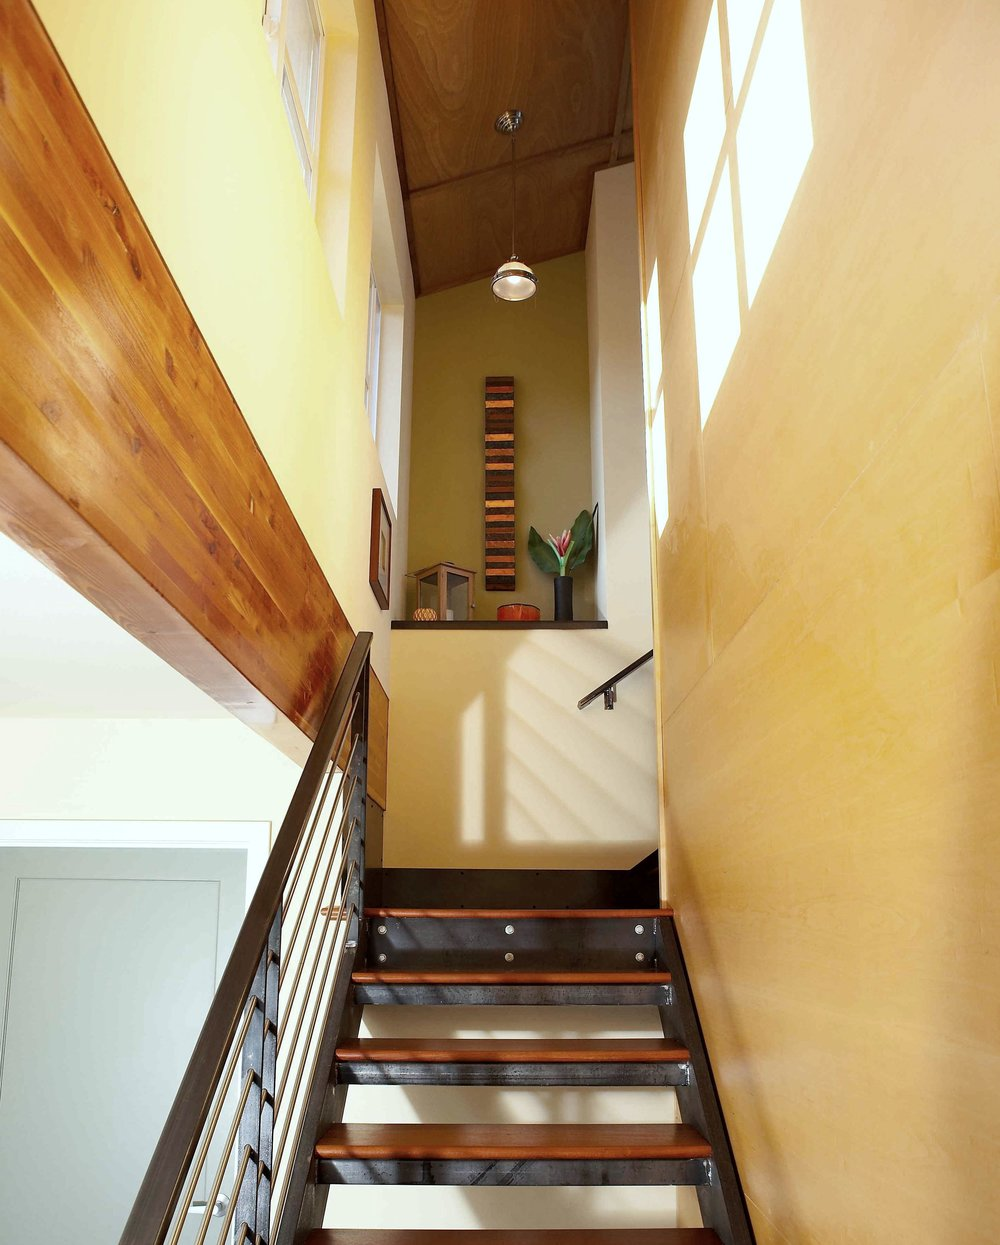 5stair hall.jpg